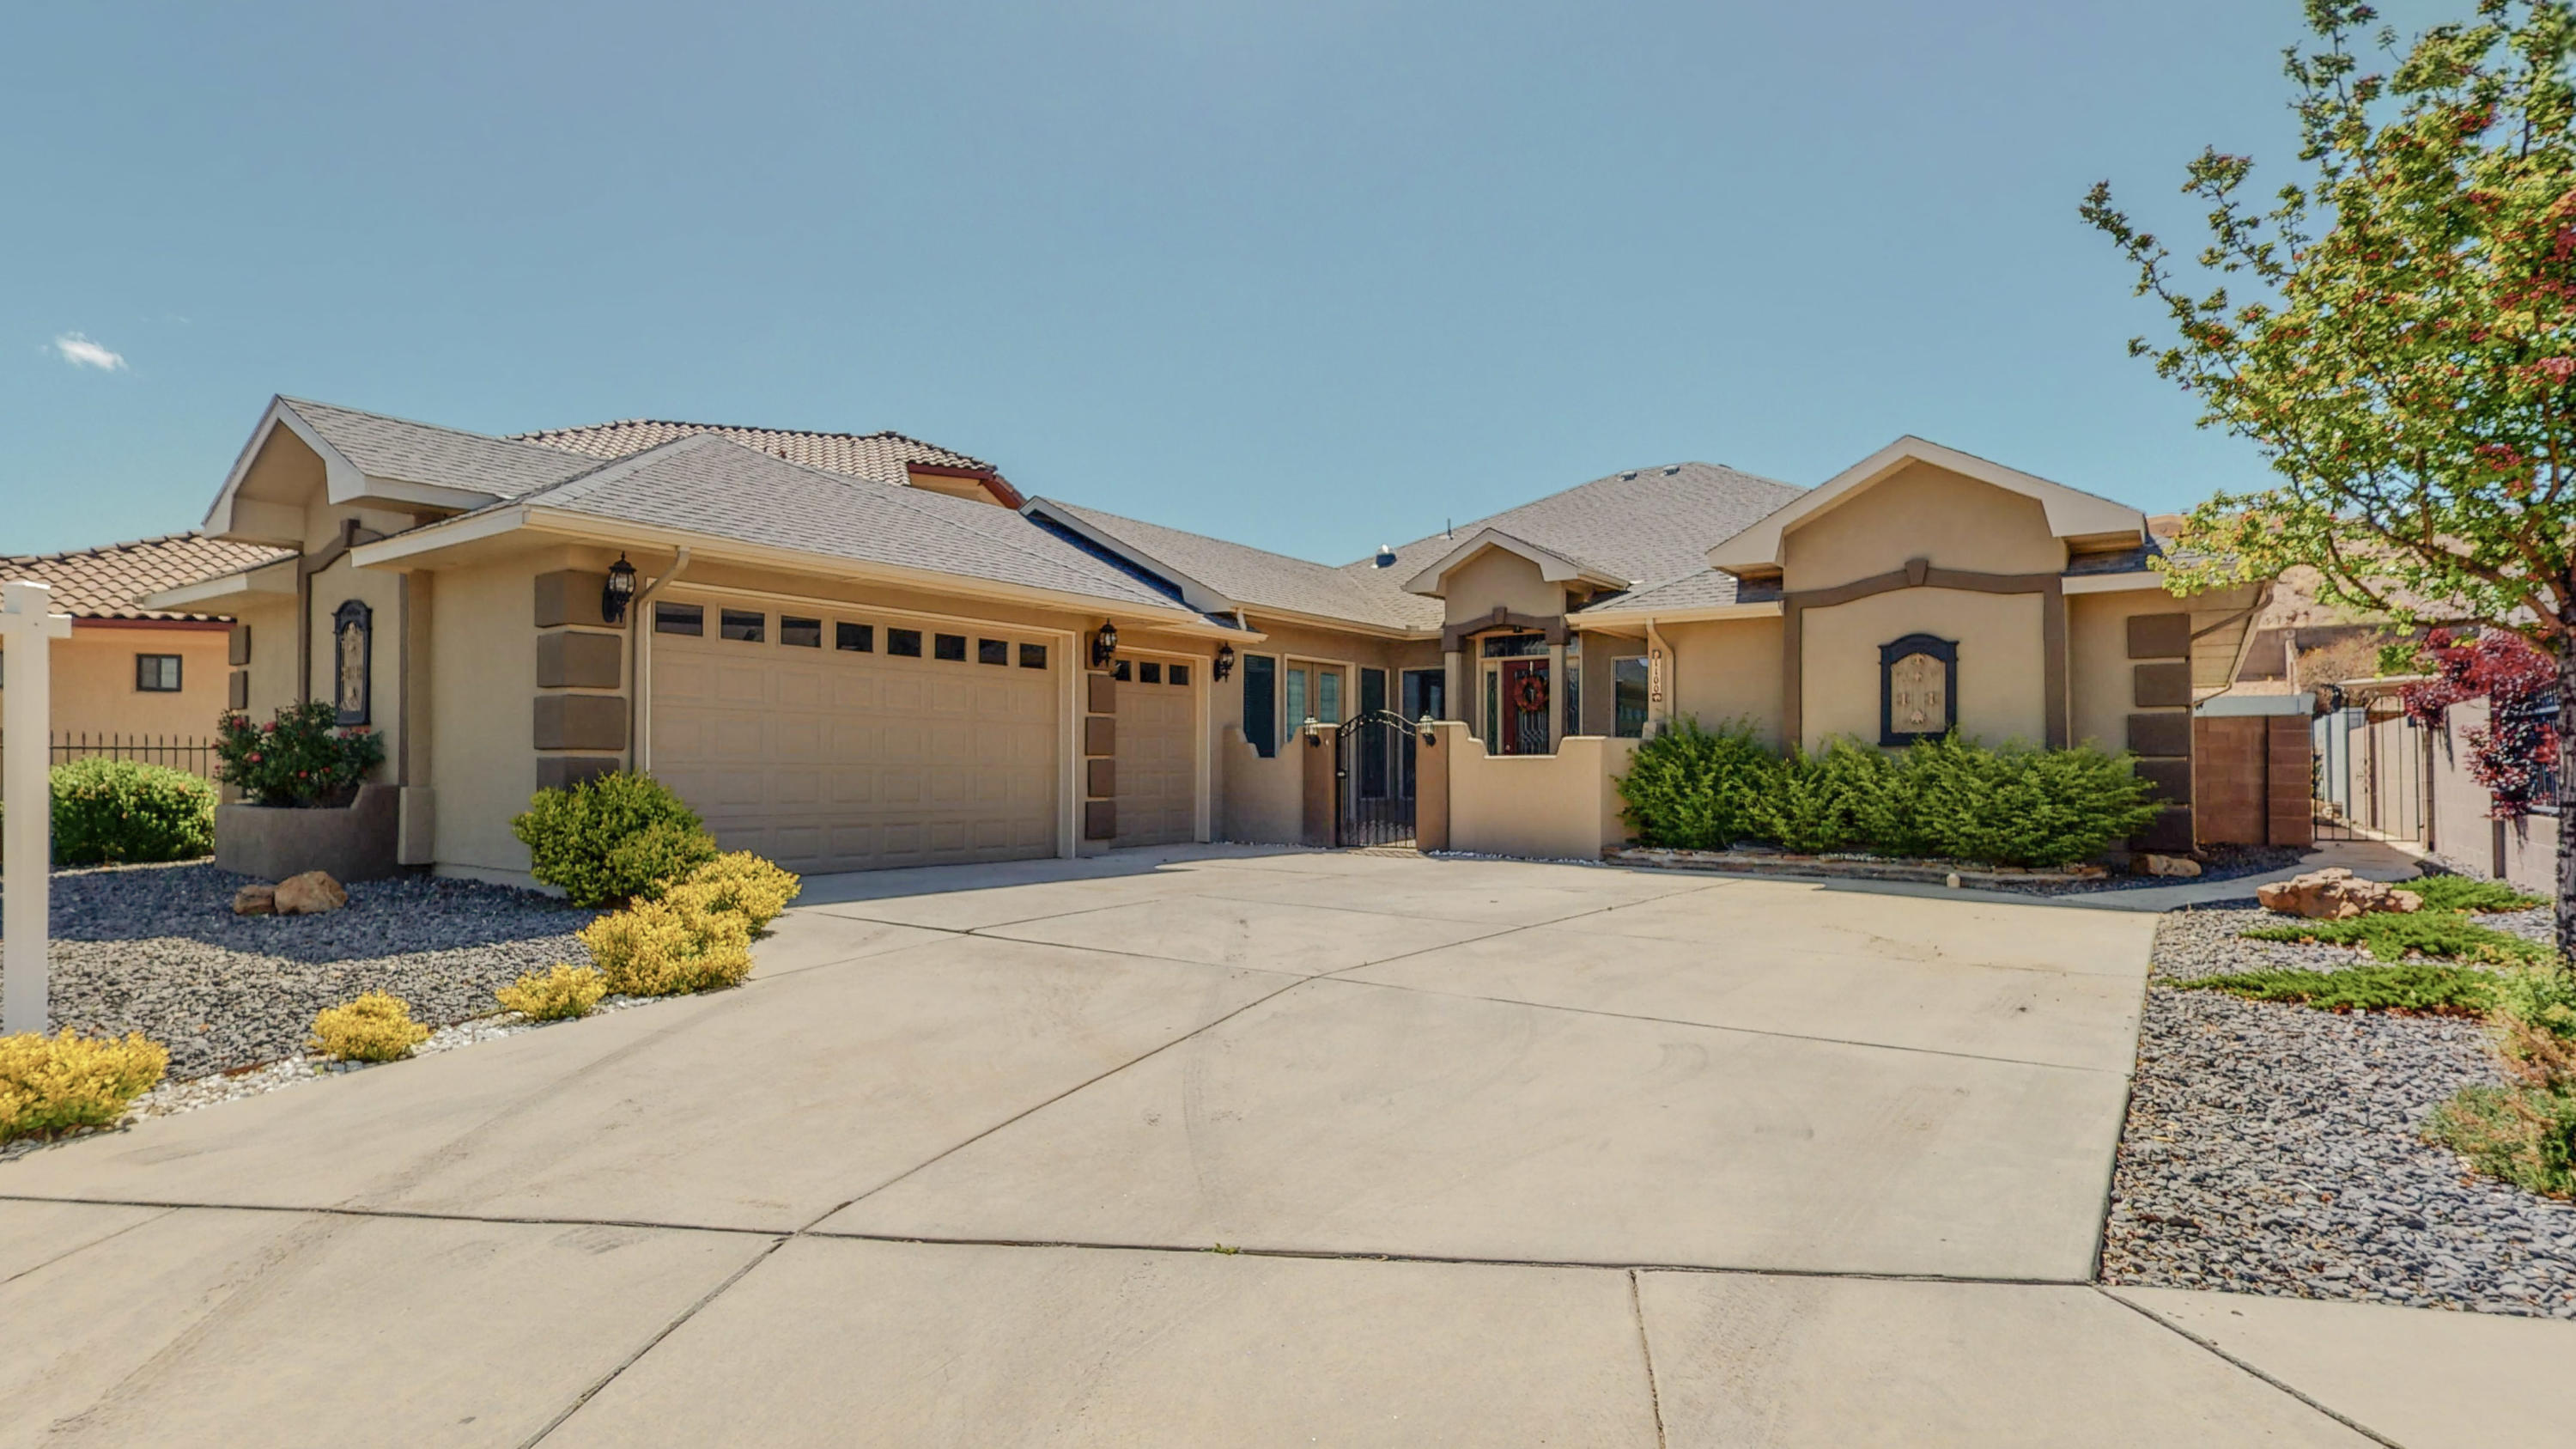 Custom home located in a highly desirable neighborhood in the heart of Los Lunas. You will love the high ceilings, open floor plan, and gourmet kitchen fit for a chef, perfect for entertaining with stainless steel appliances, commercial refrigerator, double ovens, and large kitchen island. This home has two wonderful master suites on a split floor plan boasting beautiful en suite bathrooms, and grand walk-in closets. Additionally, this home offers a landscaped backyard, 3 car garage, duel refrigerated air units, and much more! See more photos and virtual tour